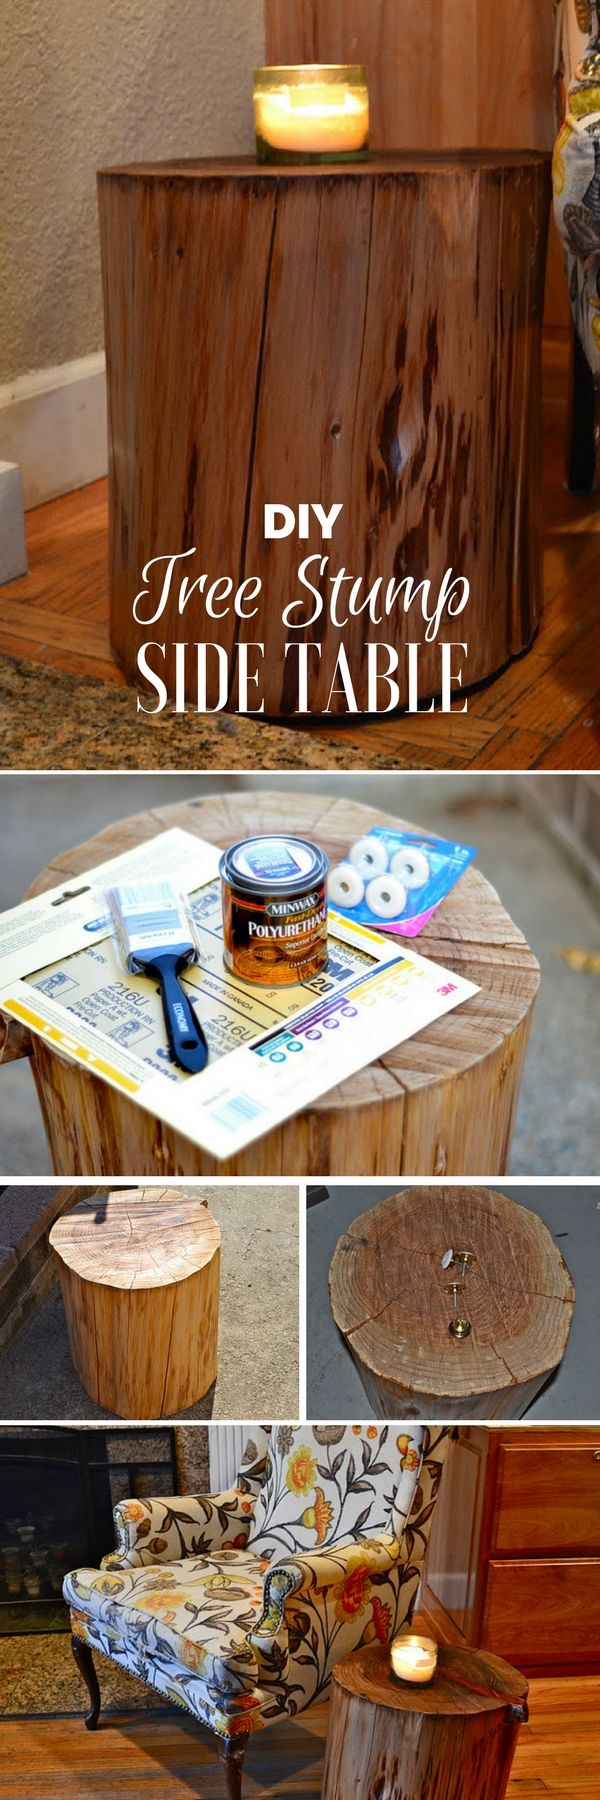 Check out the tutorial on how to make a DIY tree stump side table @istandarddesign